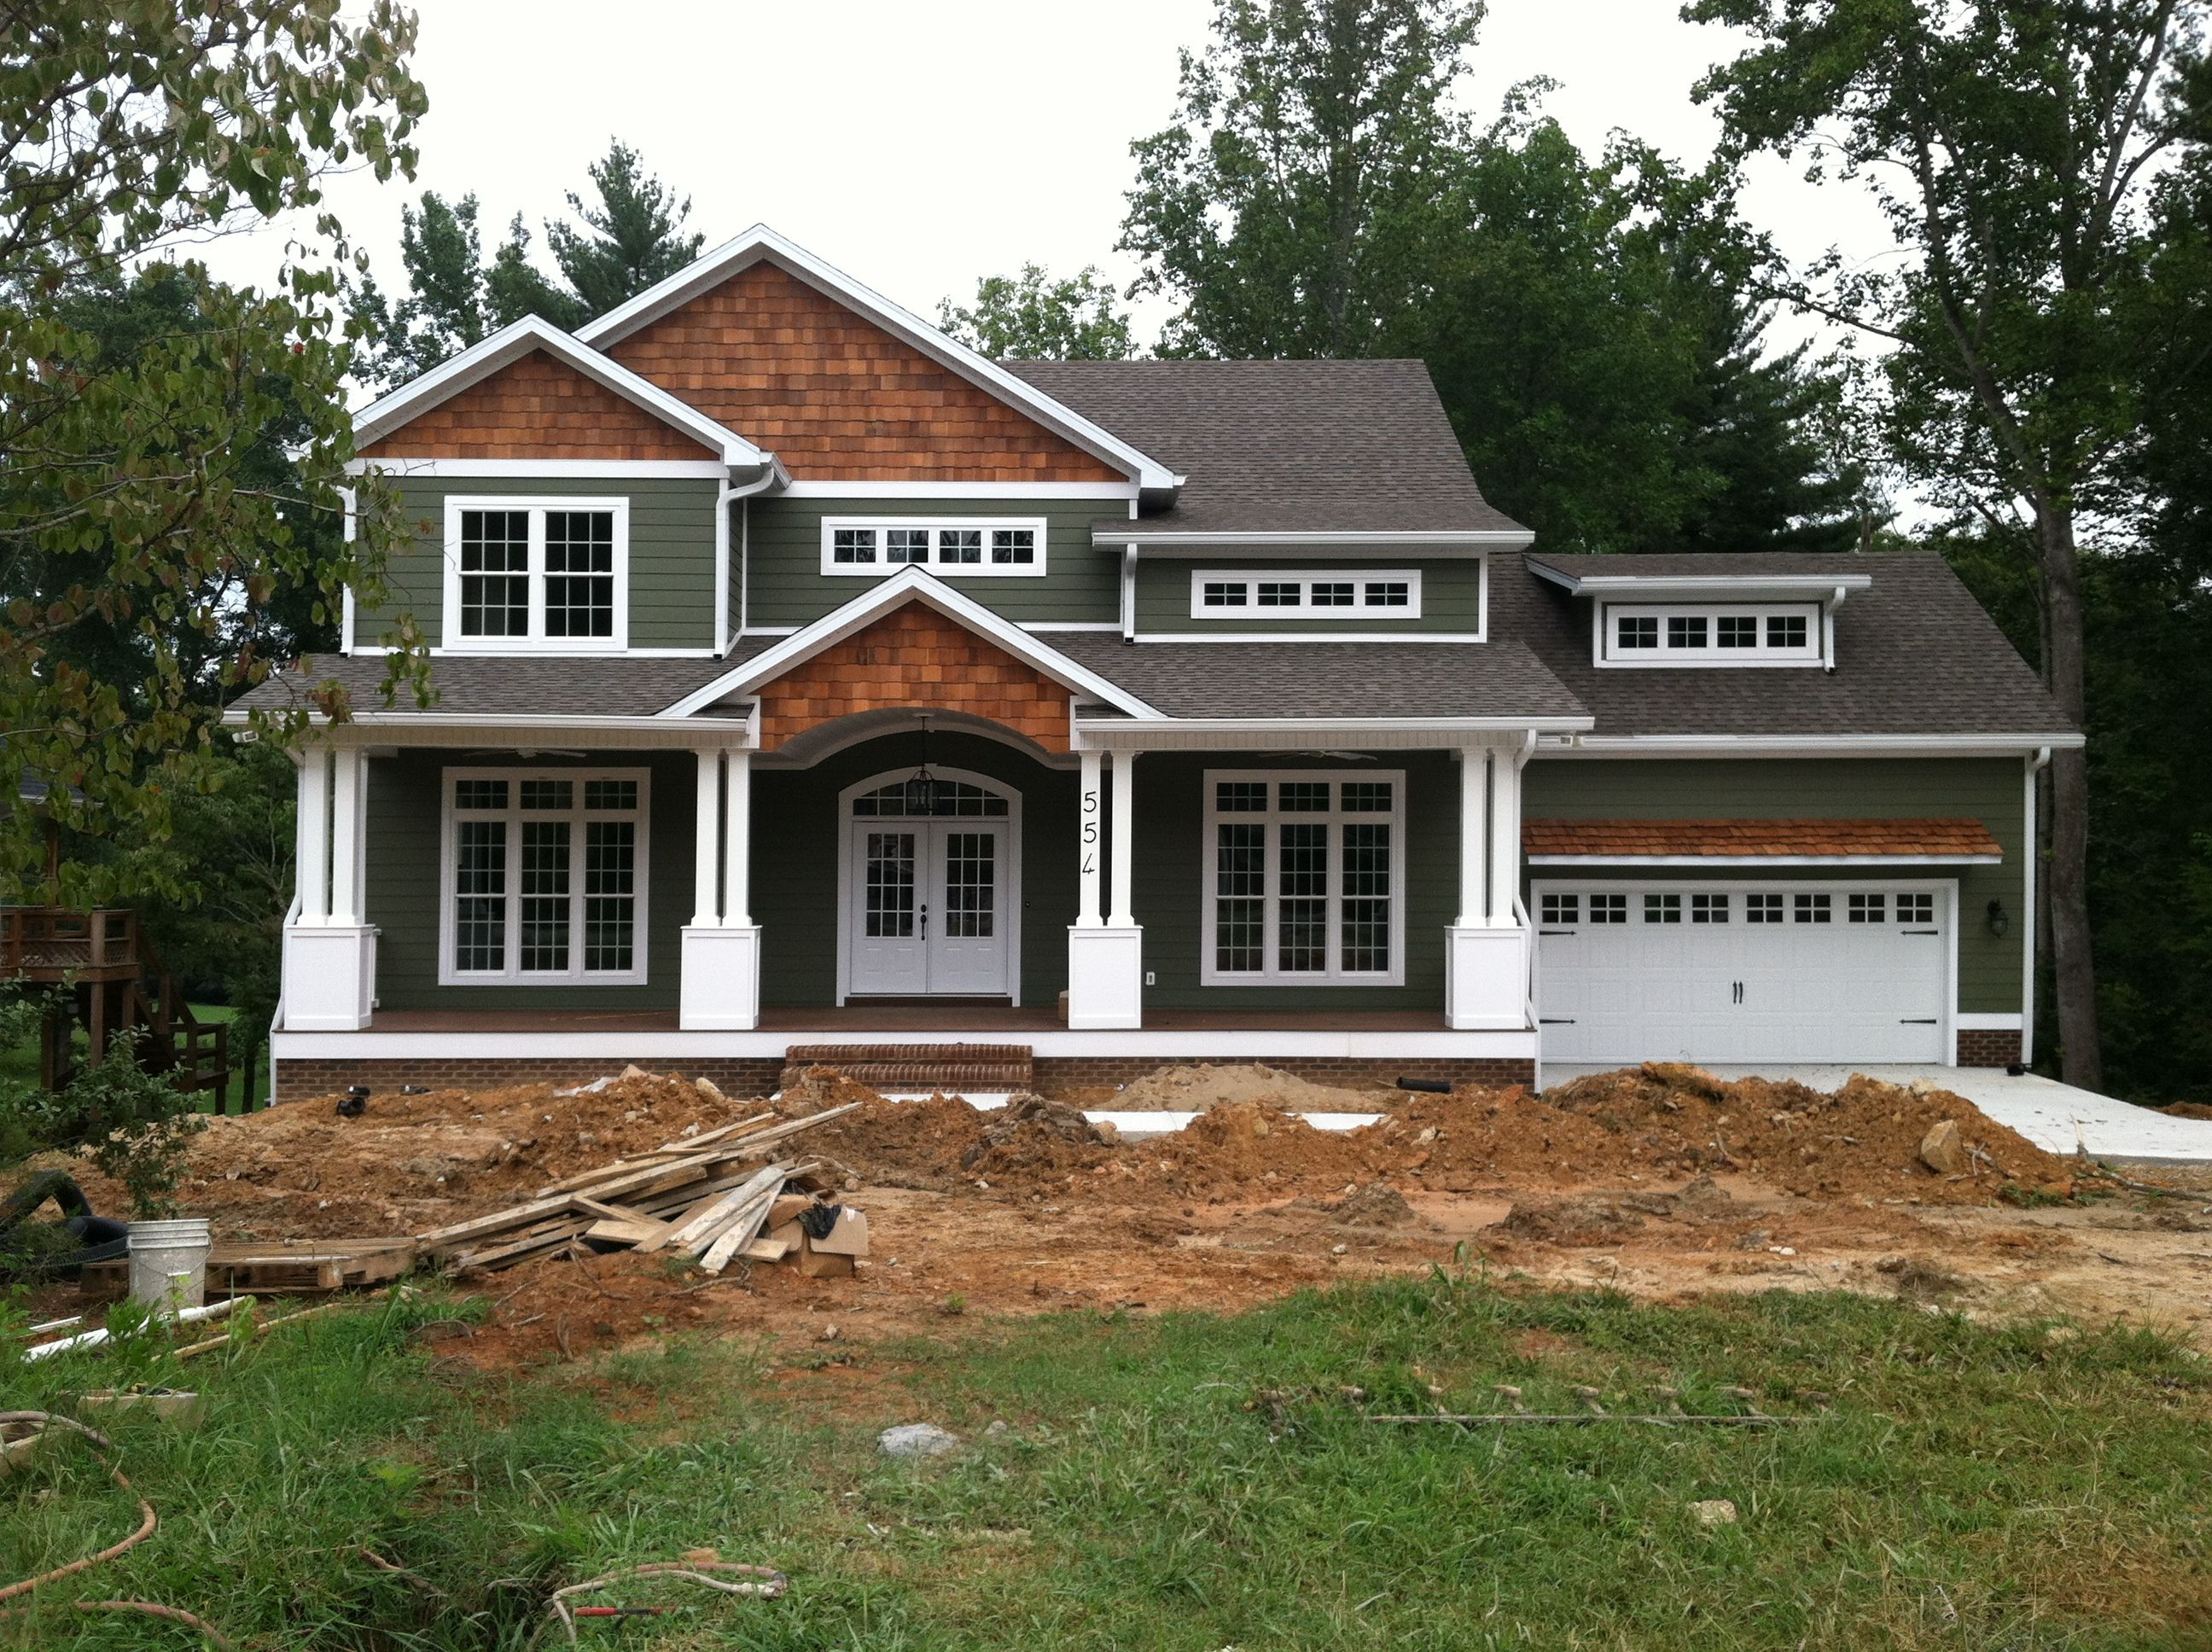 craftsman style home turn the garage to the side change the color - Craftsman Home Exterior